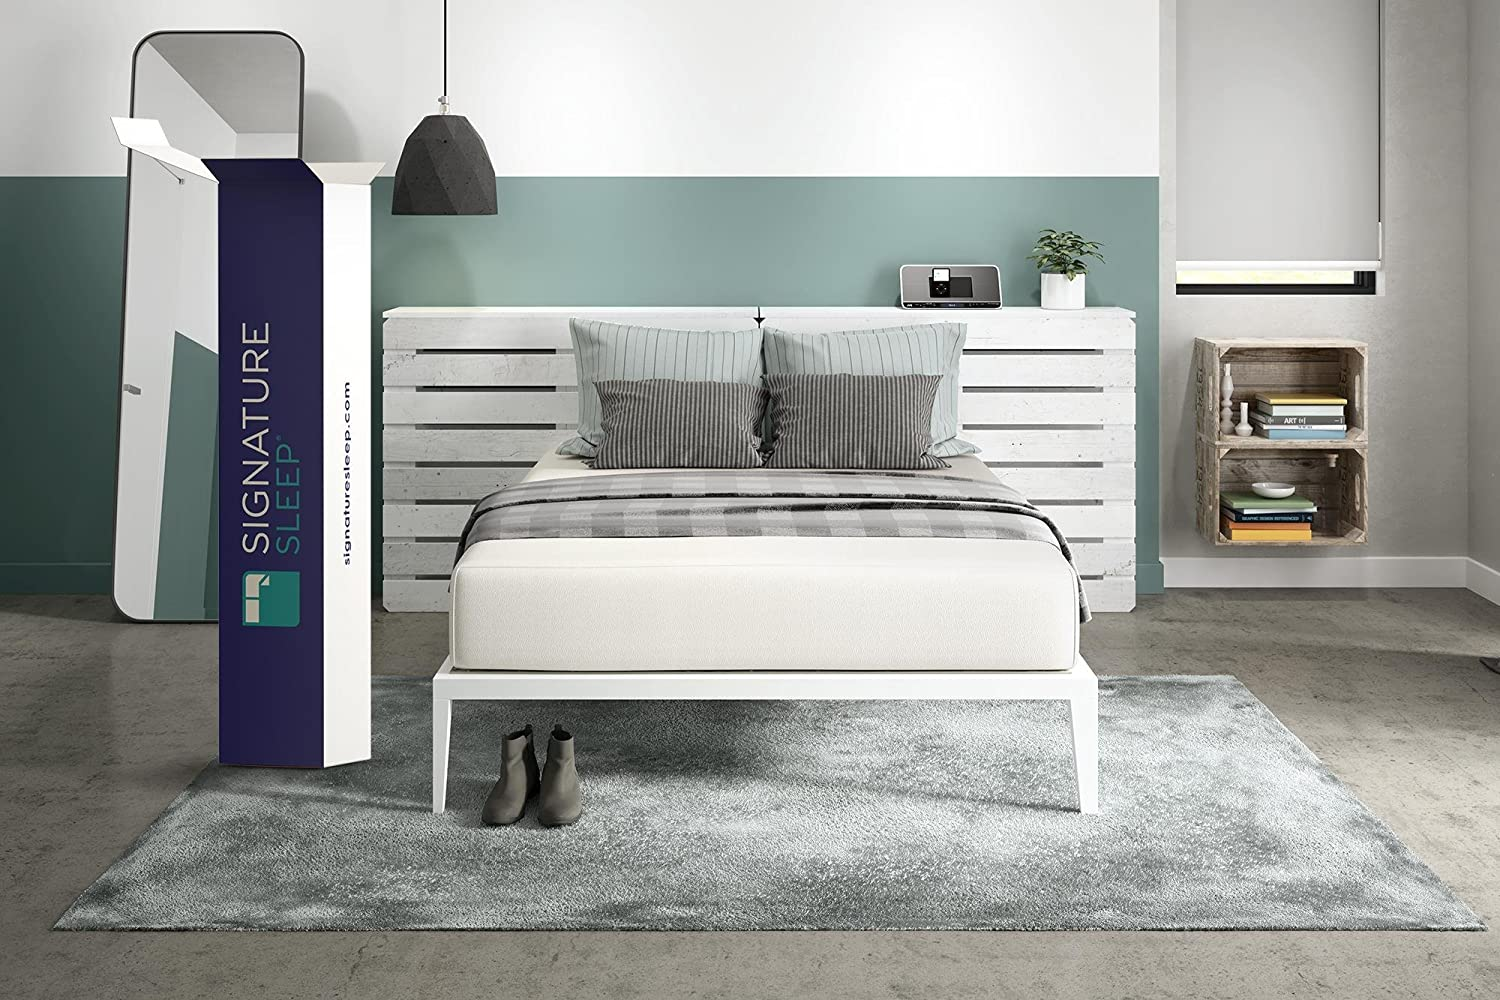 Signature Sleep Memoir Memory Foam Mattress (The Widest Range of Thicknesses)